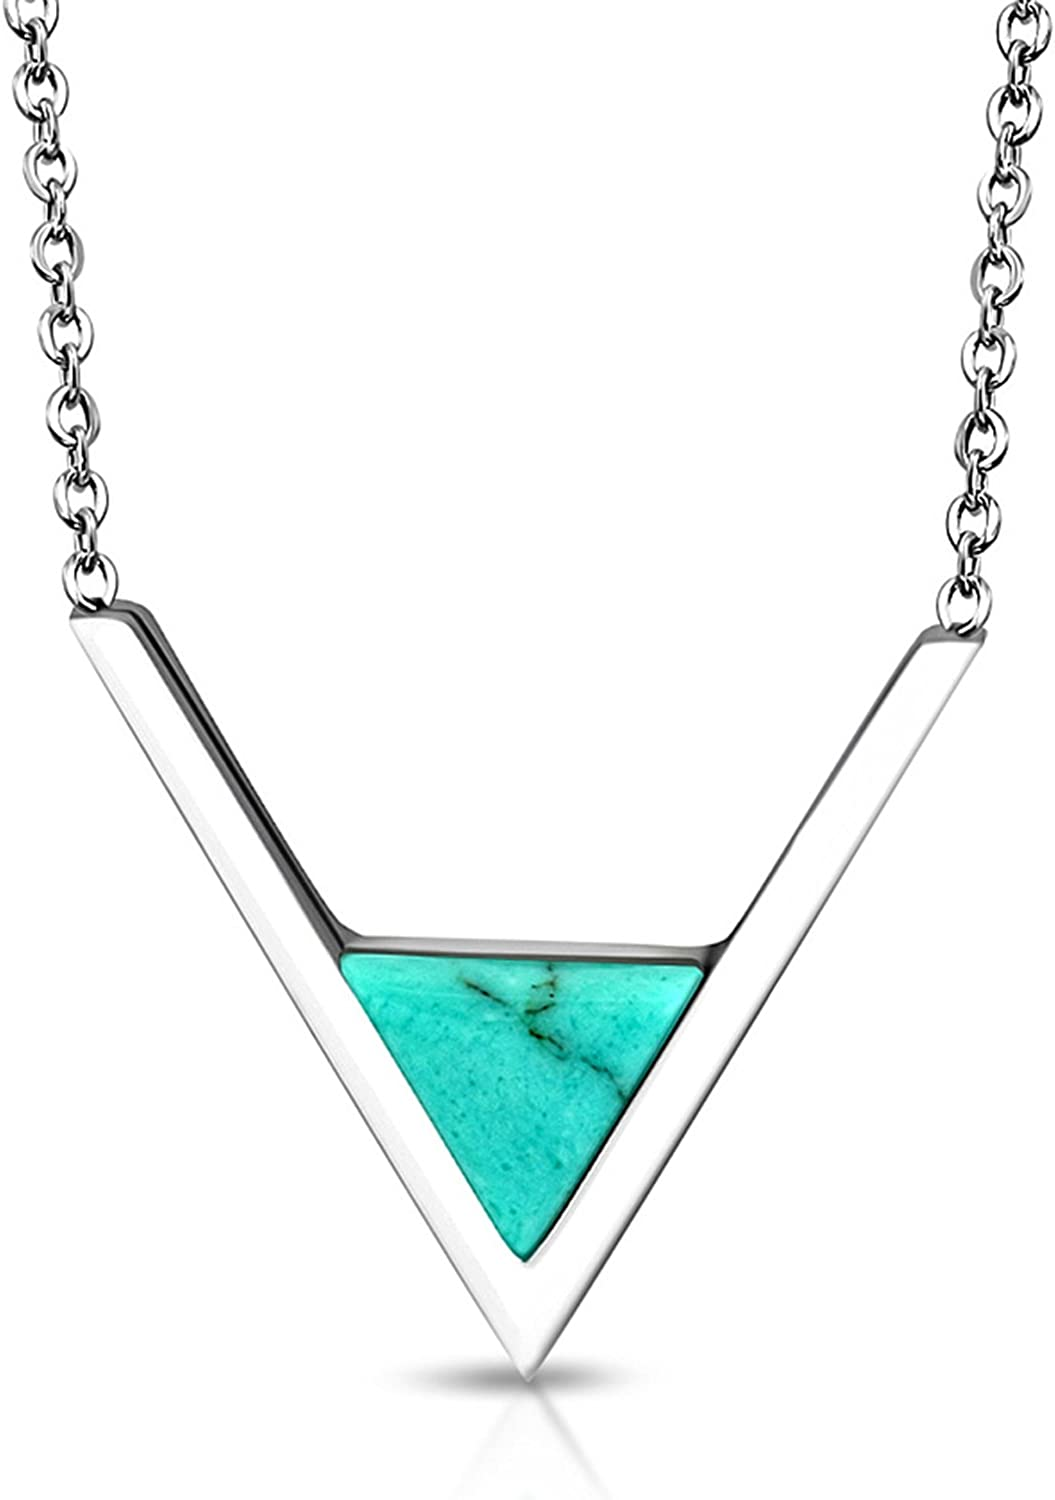 Comfort Zone Studios Stainless Steel Classic V Triangle Turquoise Stone Charm Link Chain Necklace Pendant